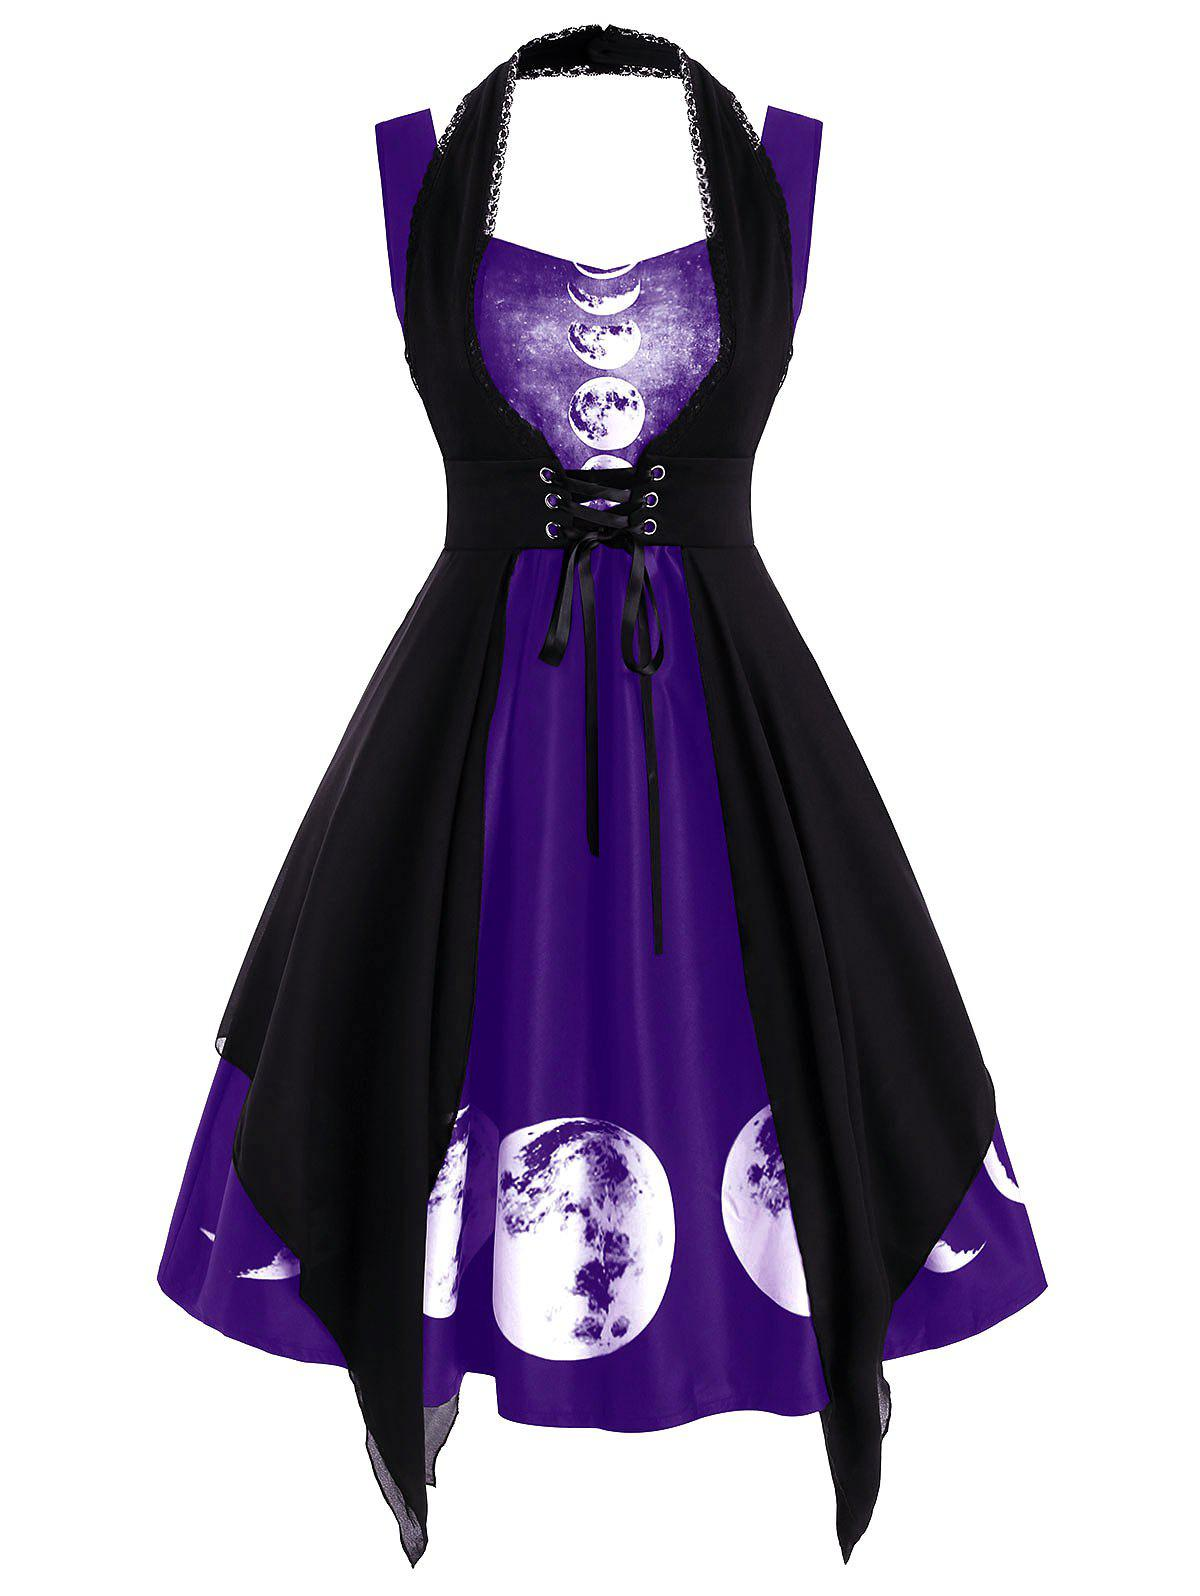 Cheap Sweetheart Lunar Eclipse Print Dress with Lace Panel Corset